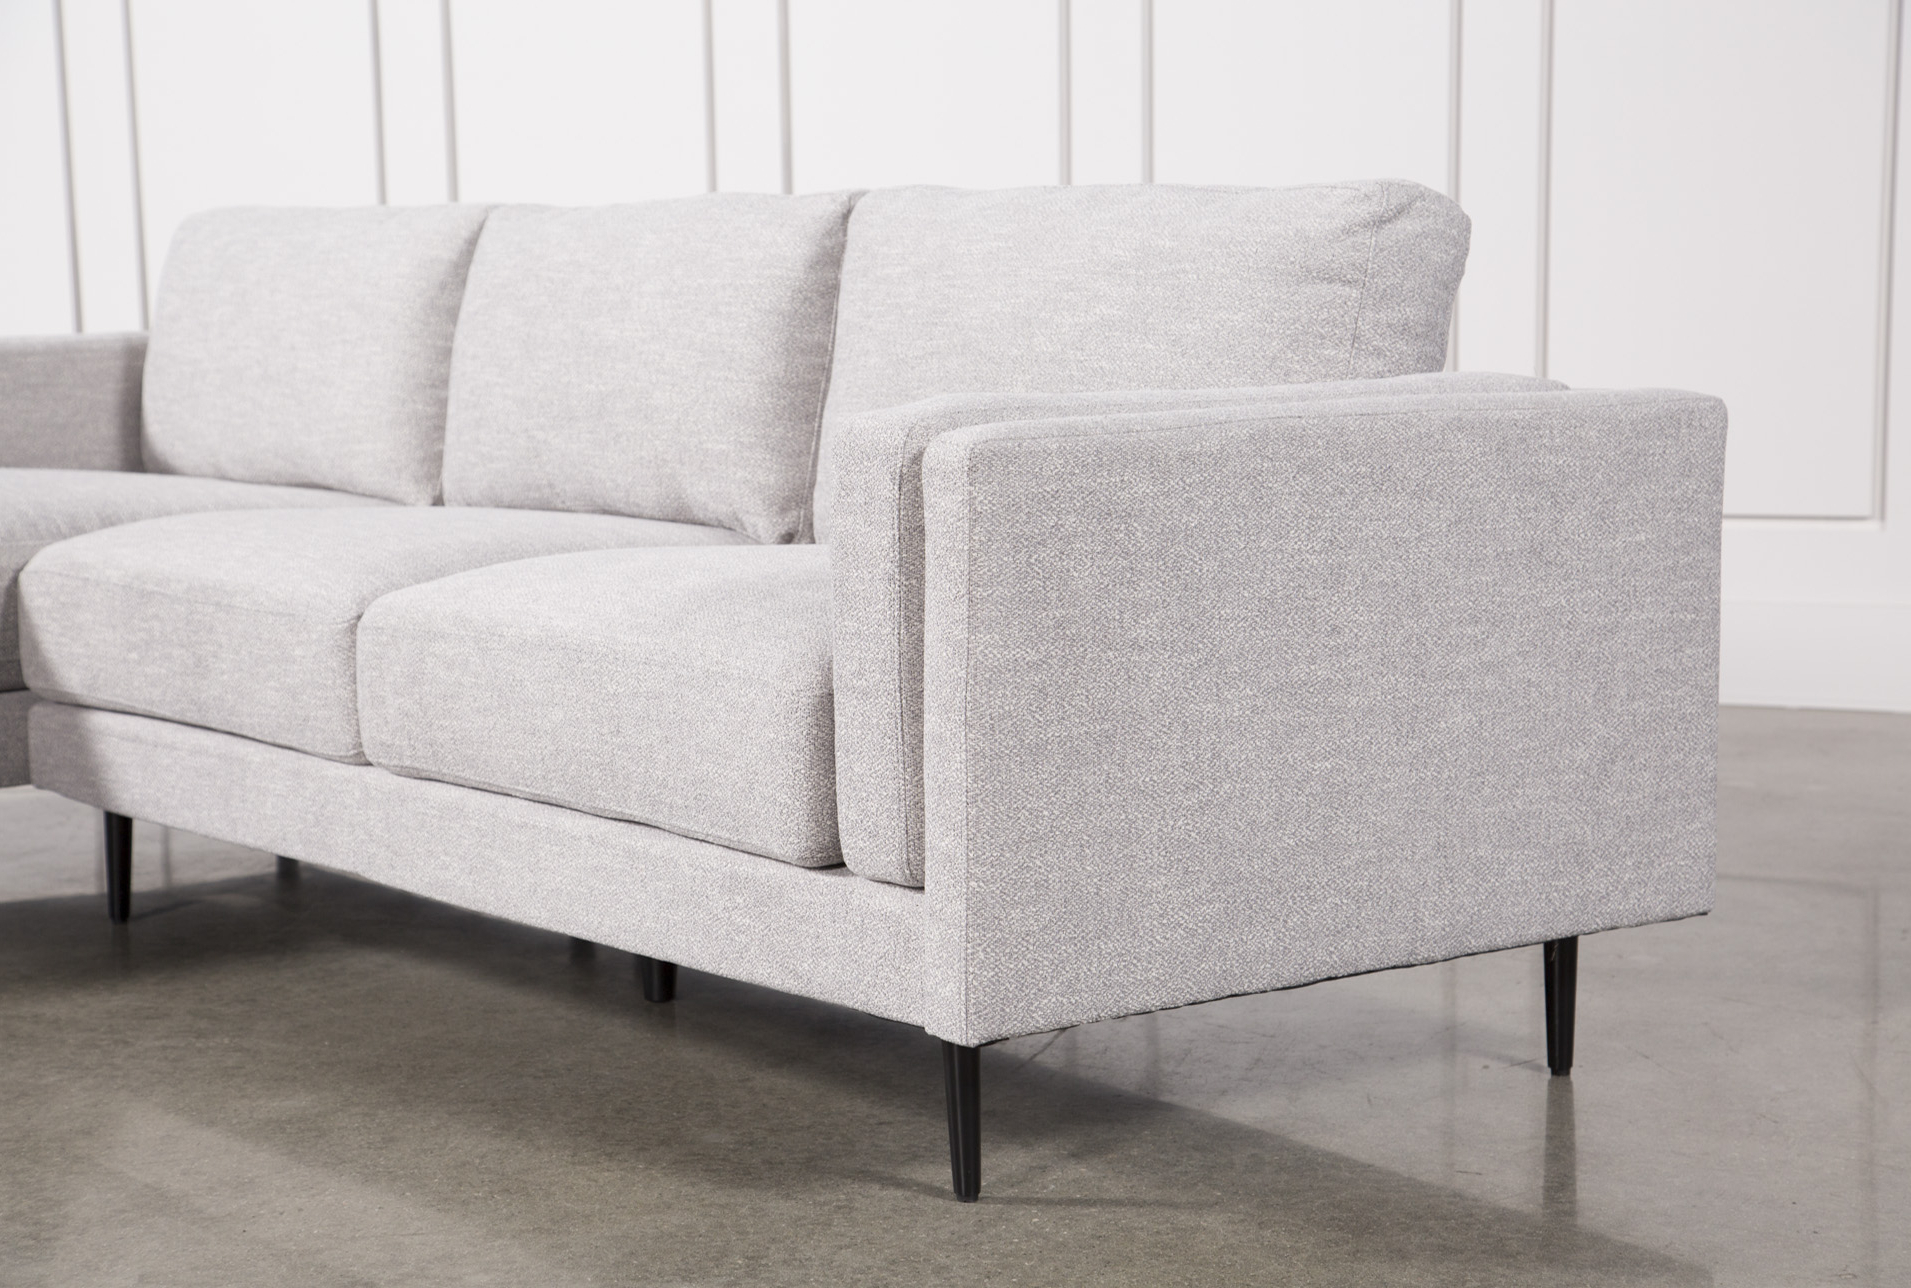 Pinterest Regarding Most Recent Aquarius Light Grey 2 Piece Sectionals With Laf Chaise (Gallery 5 of 20)